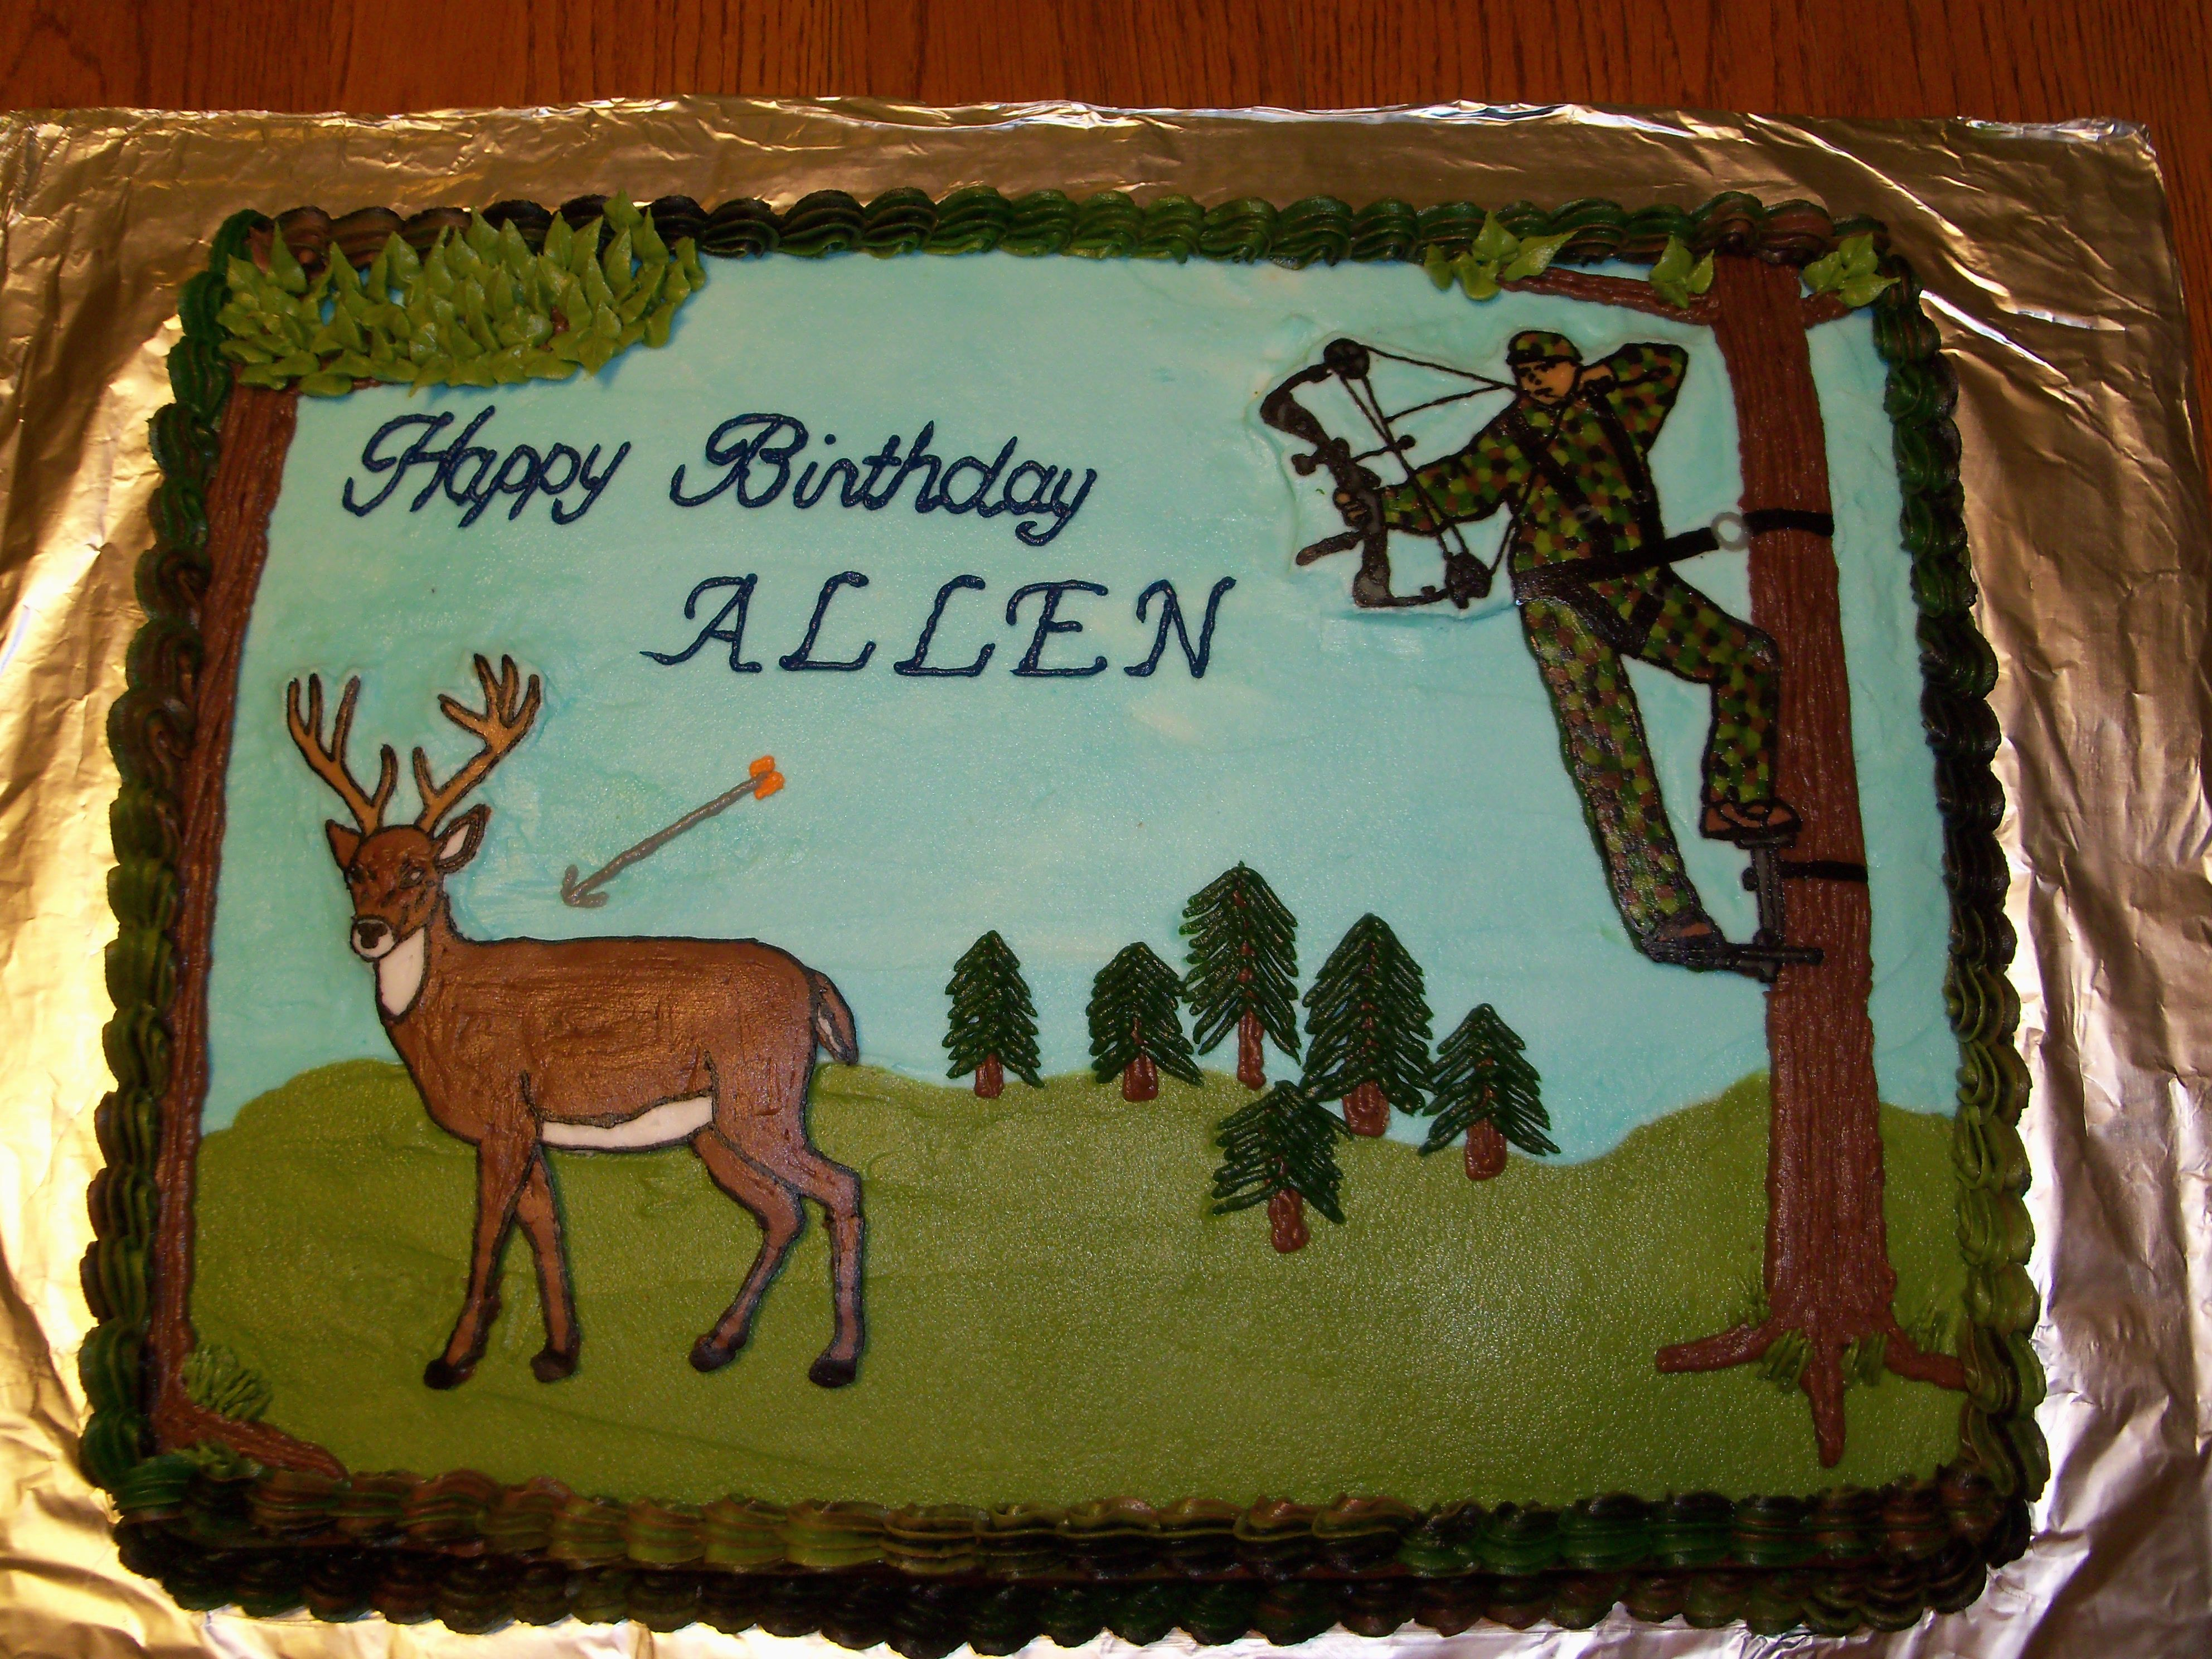 Bow hunting cake My husband requested a cake with camo